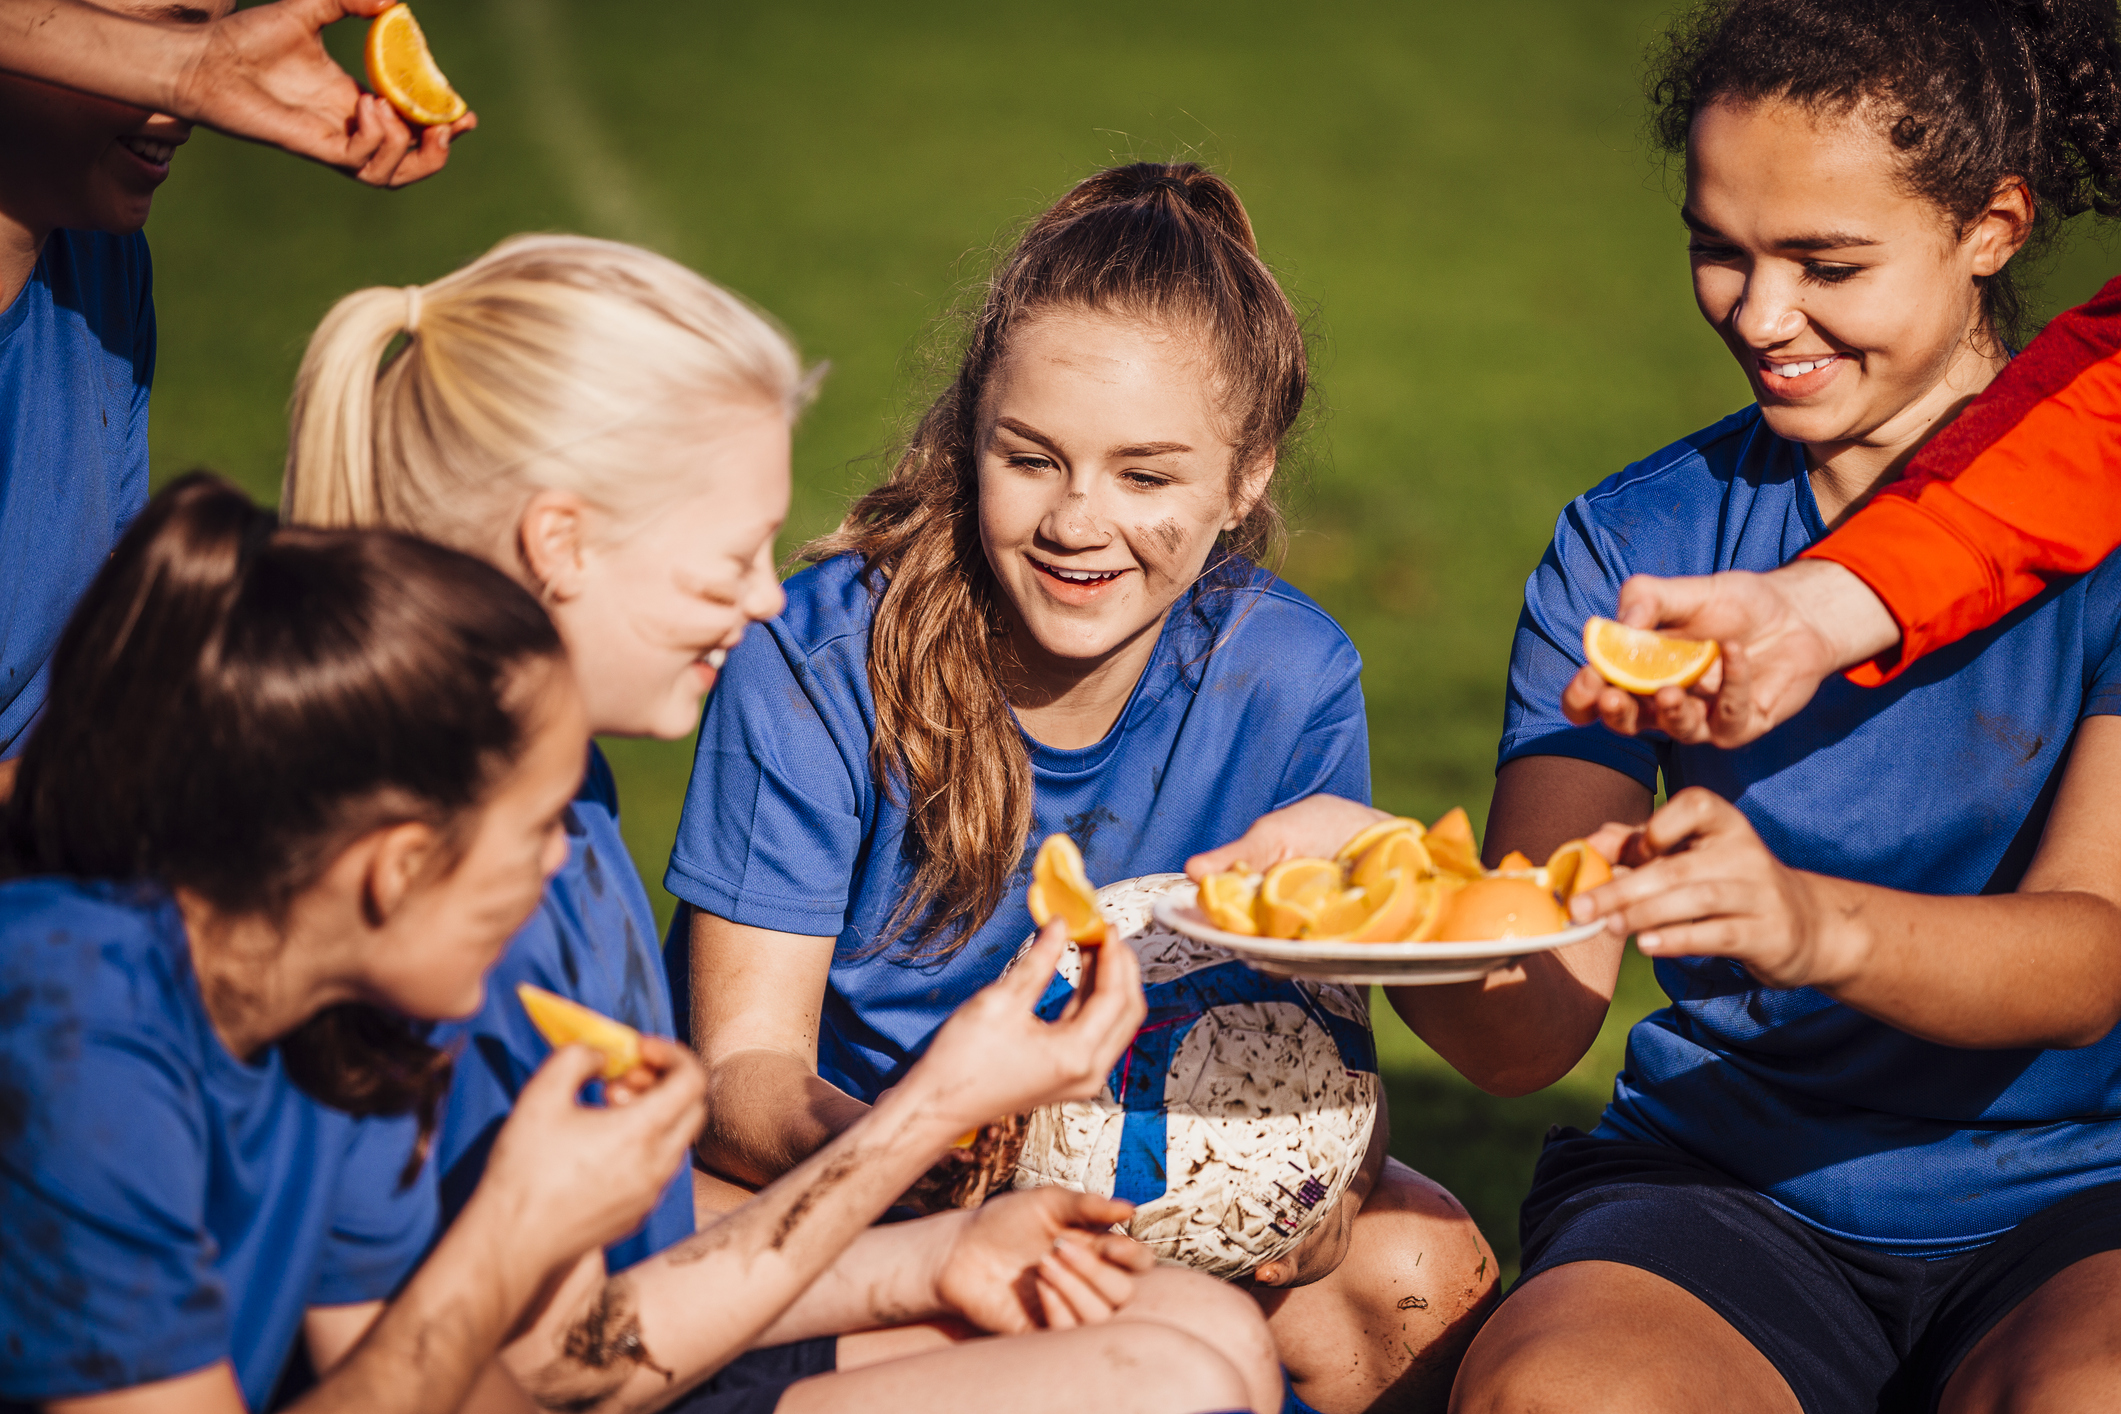 Young teenage girls sitting down to eat some fresh sliced oranges. Dirty sitting with a soccer ball and all smiling